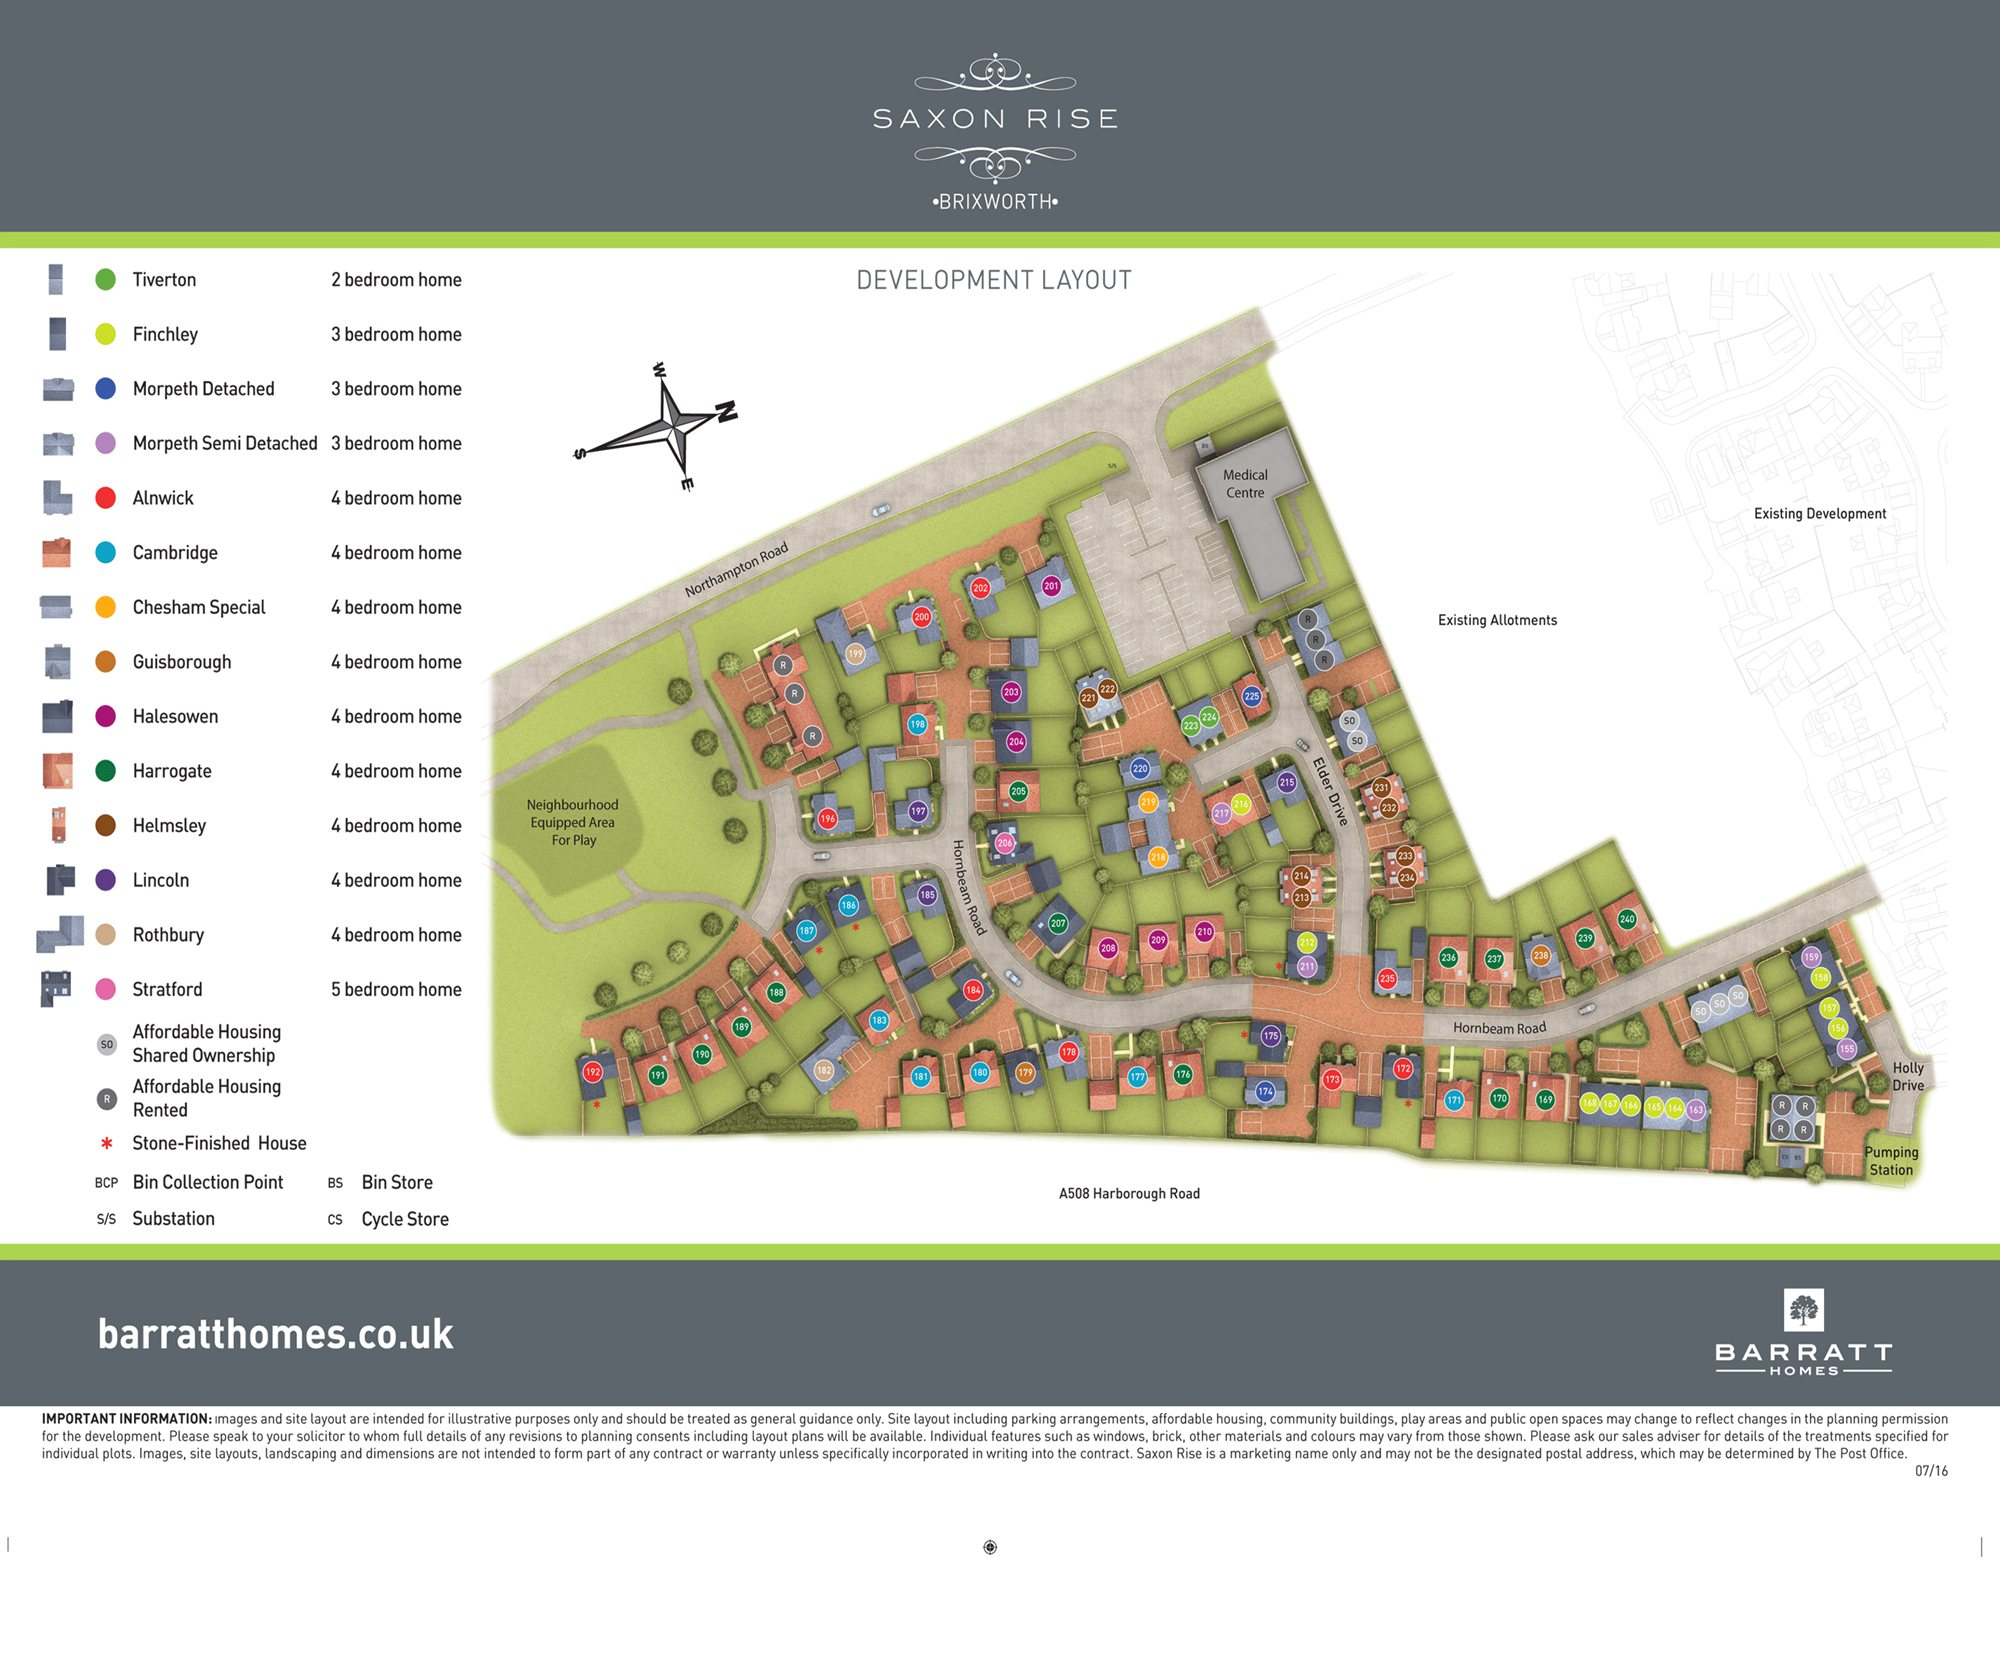 Saxon Rise development plan ph 2